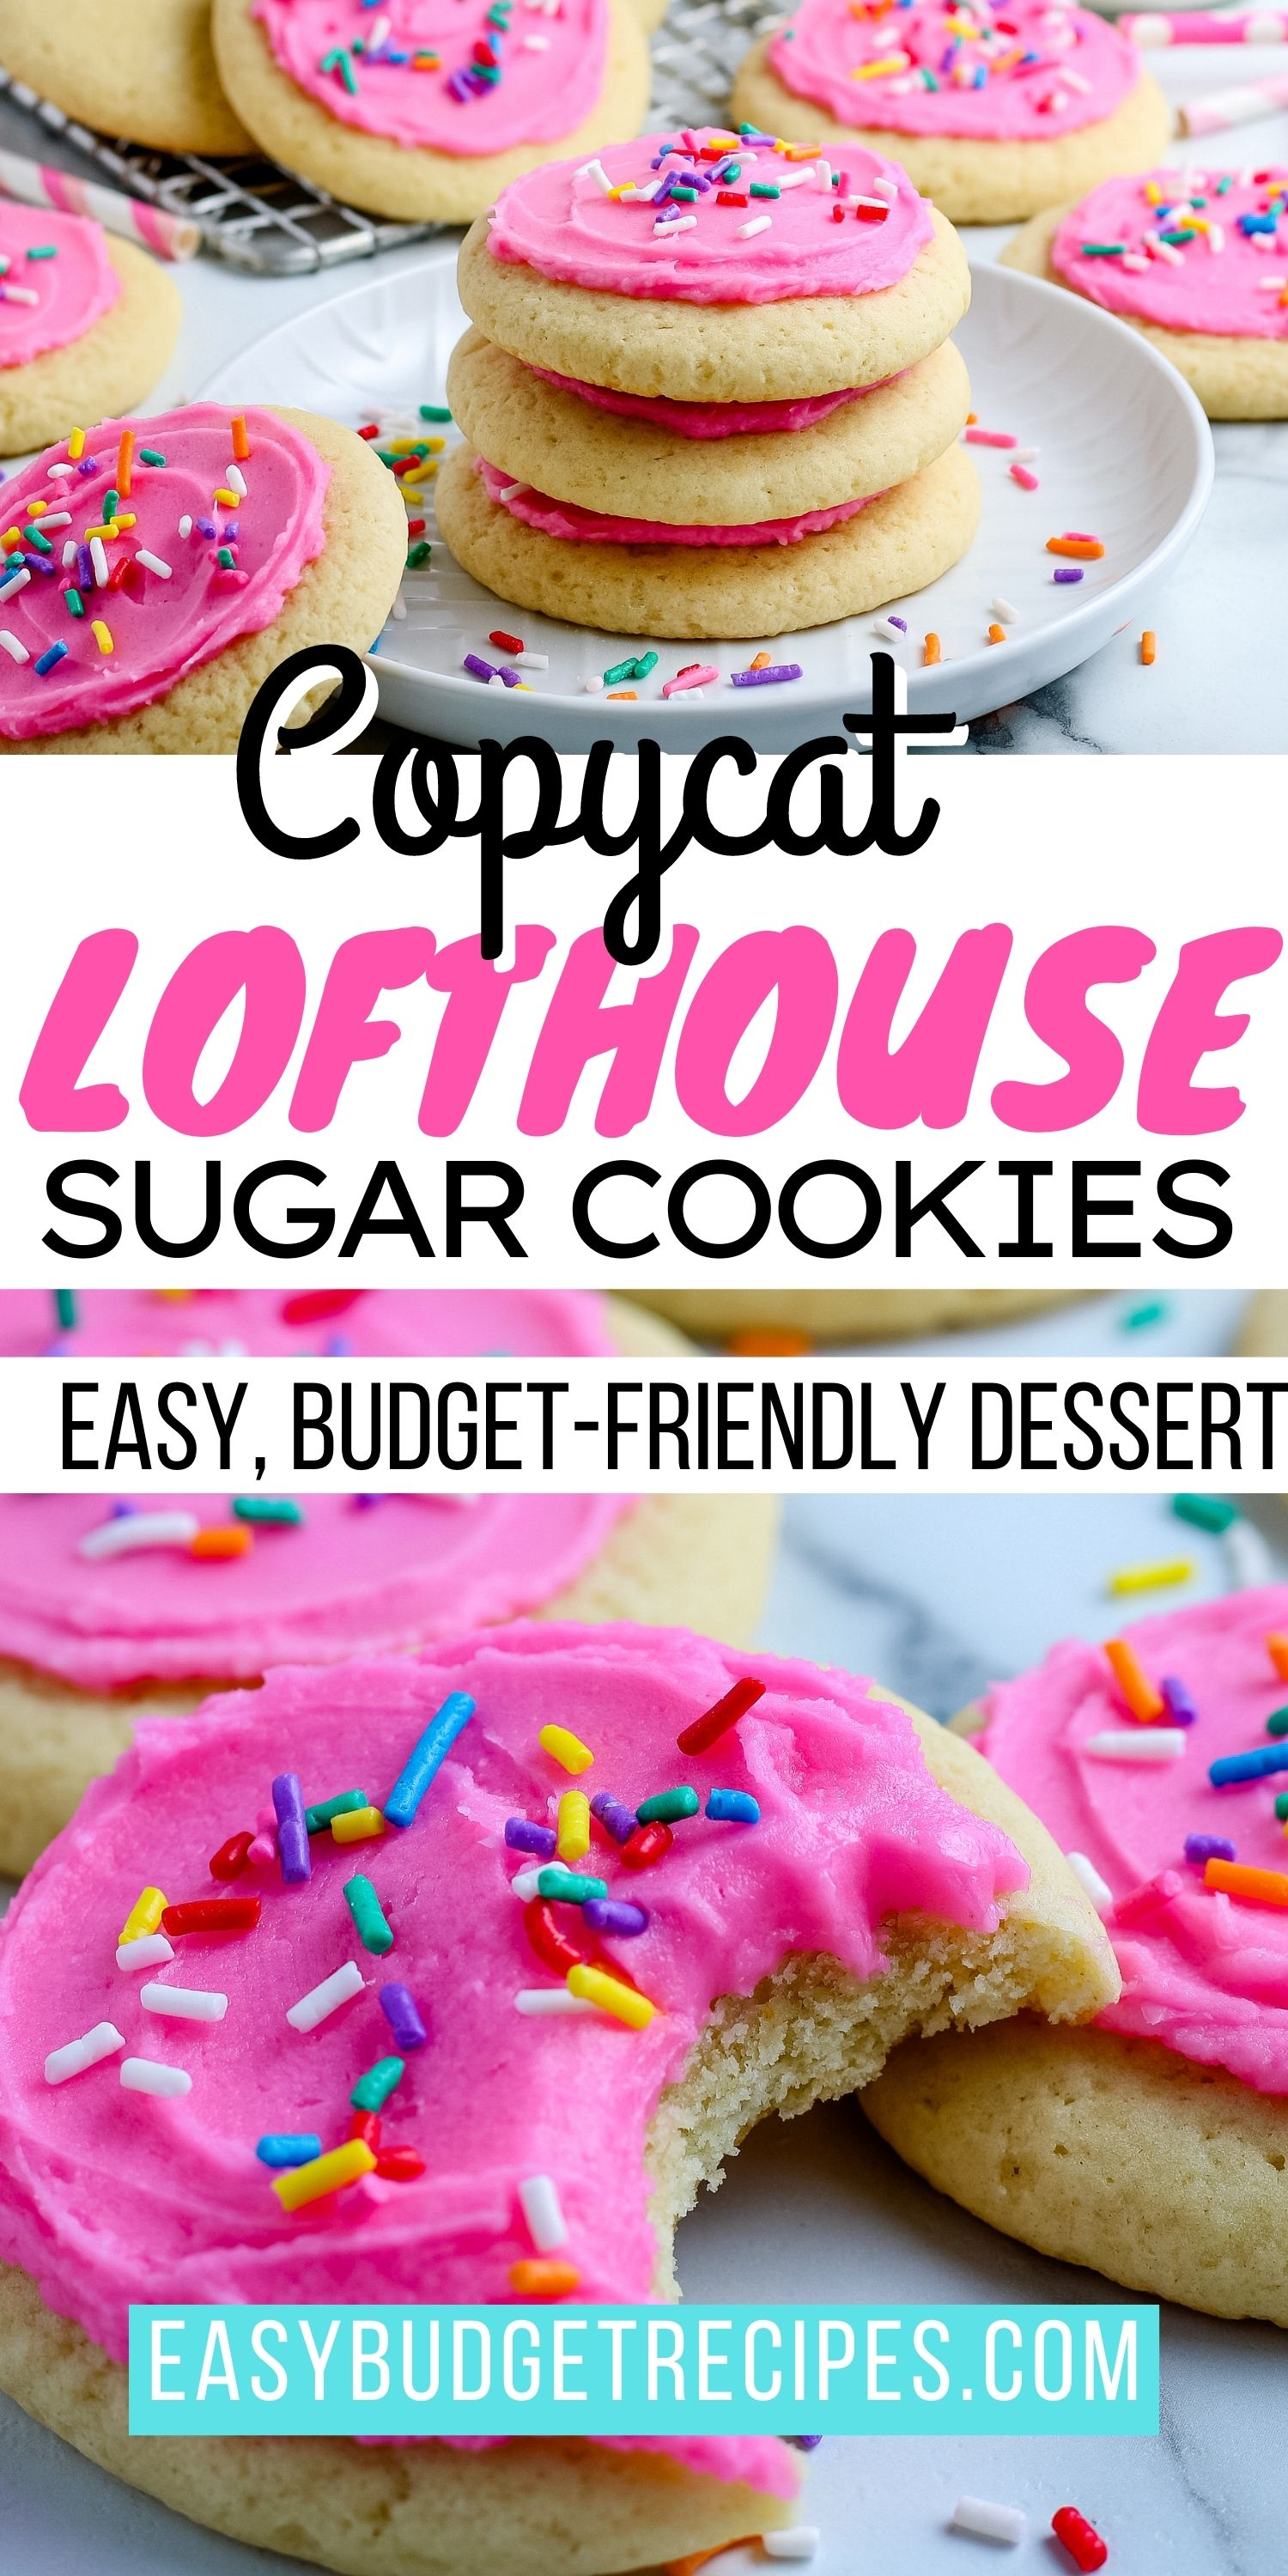 With our Copycat Lofthouse Sugar Cookies recipe, you can make your favorite store-bought frosted sugar cookie at home for so much cheaper! via @easybudgetrecipes